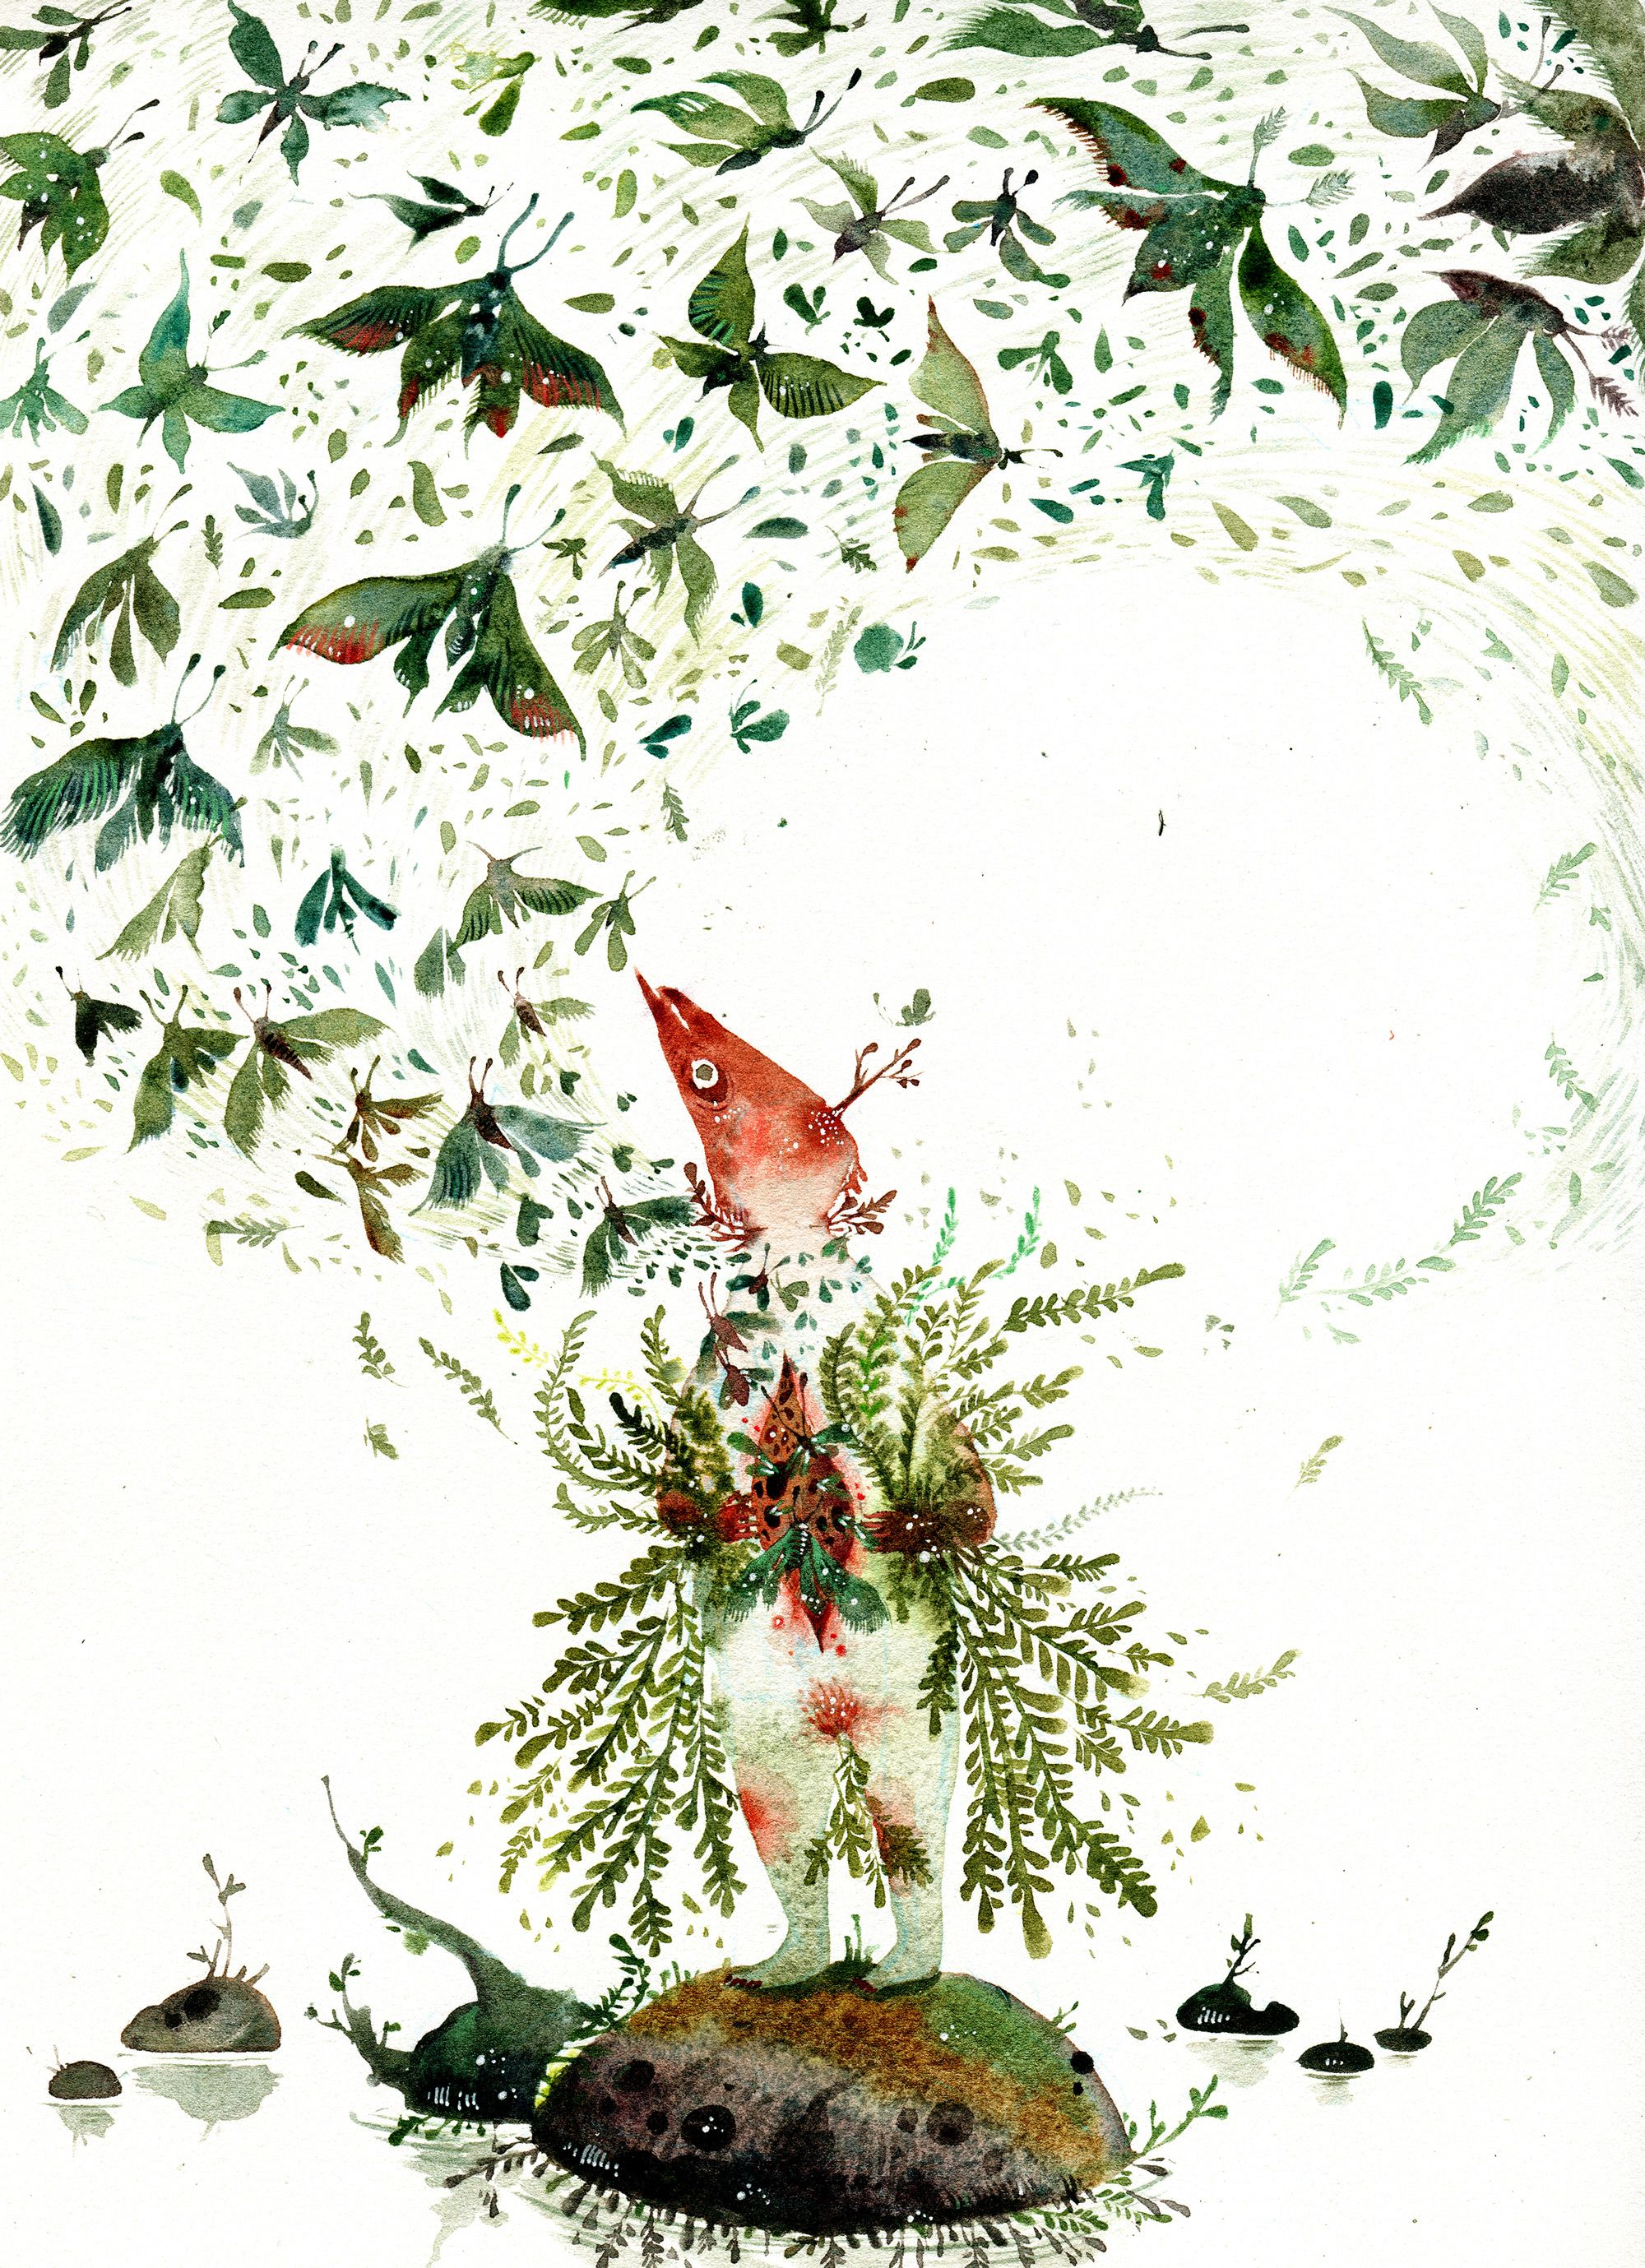 Watercolor Illustrations That Trace the Dark and Light Elements of  Storybook Myths by Amber Ma | Watercolor illustration, Illustration,  Tracing art